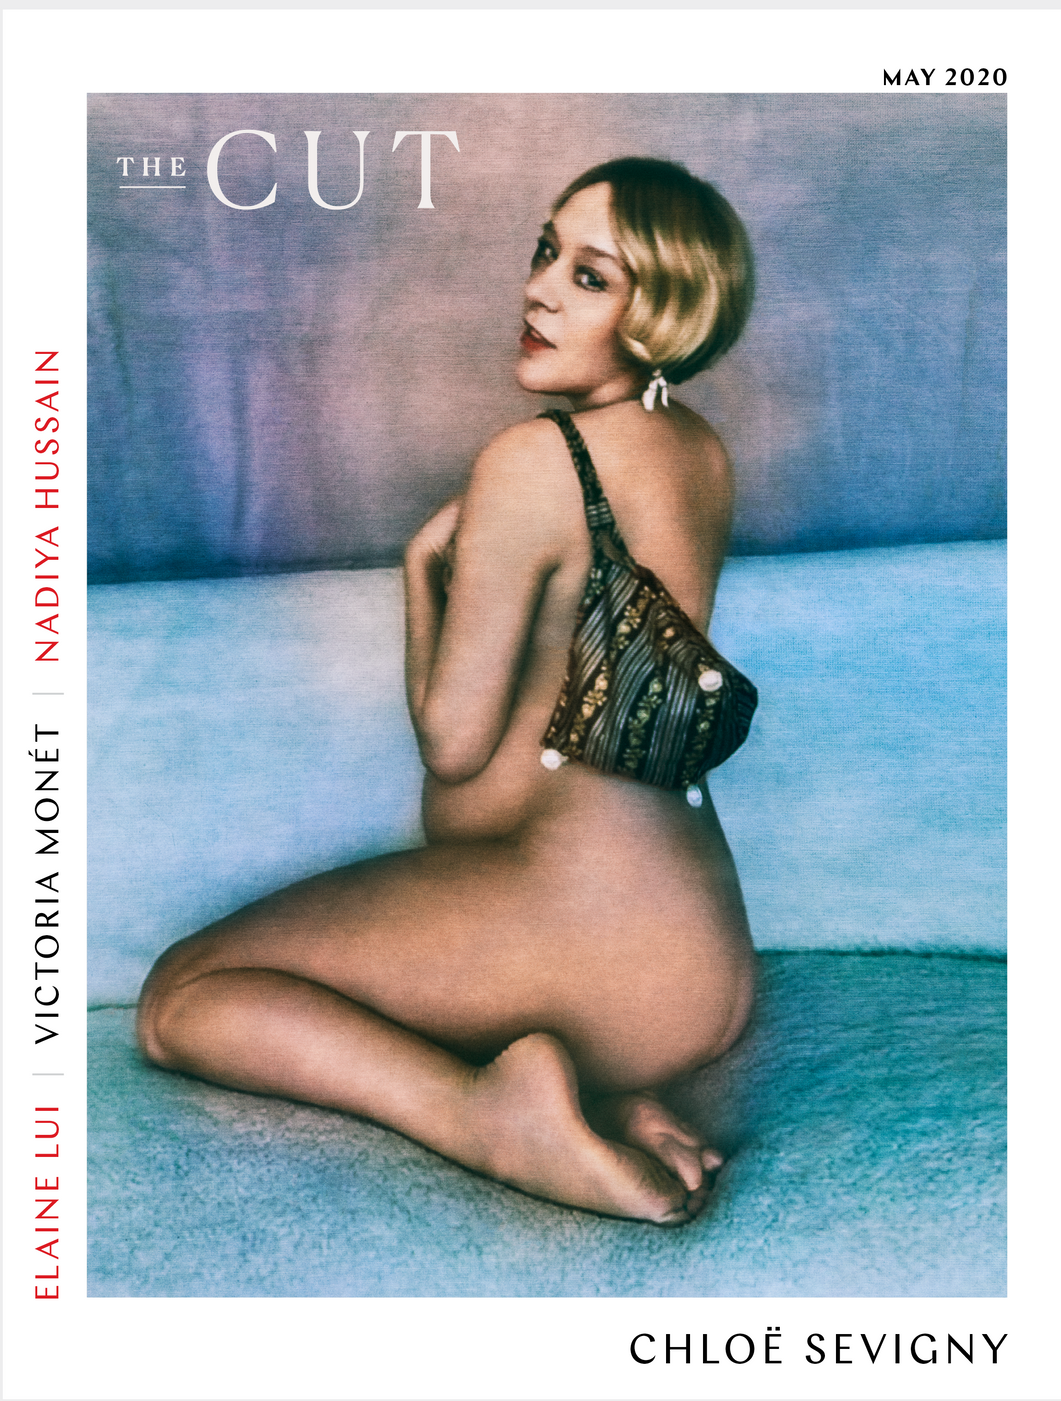 Chloe Sevigny The Cut Cover by Elizaveta Porodina.png